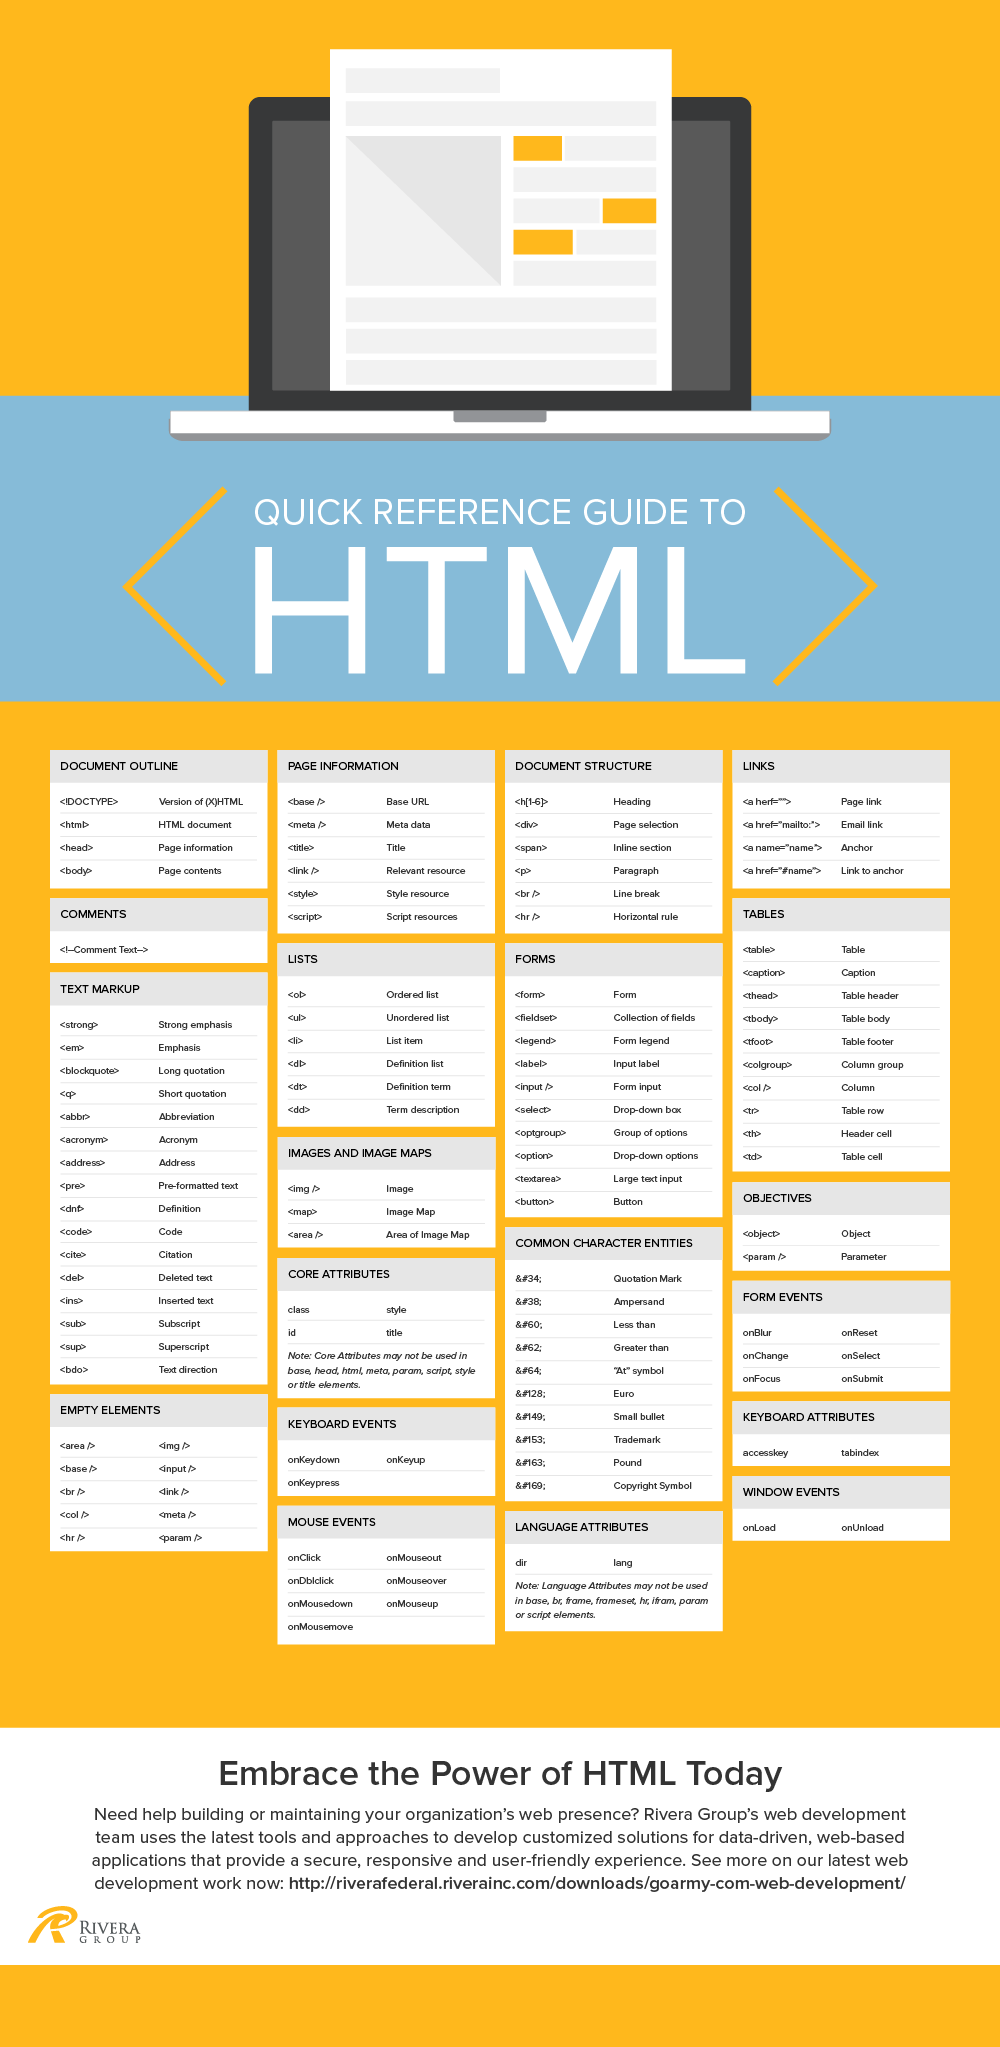 Quick Reference Guide to HTML5